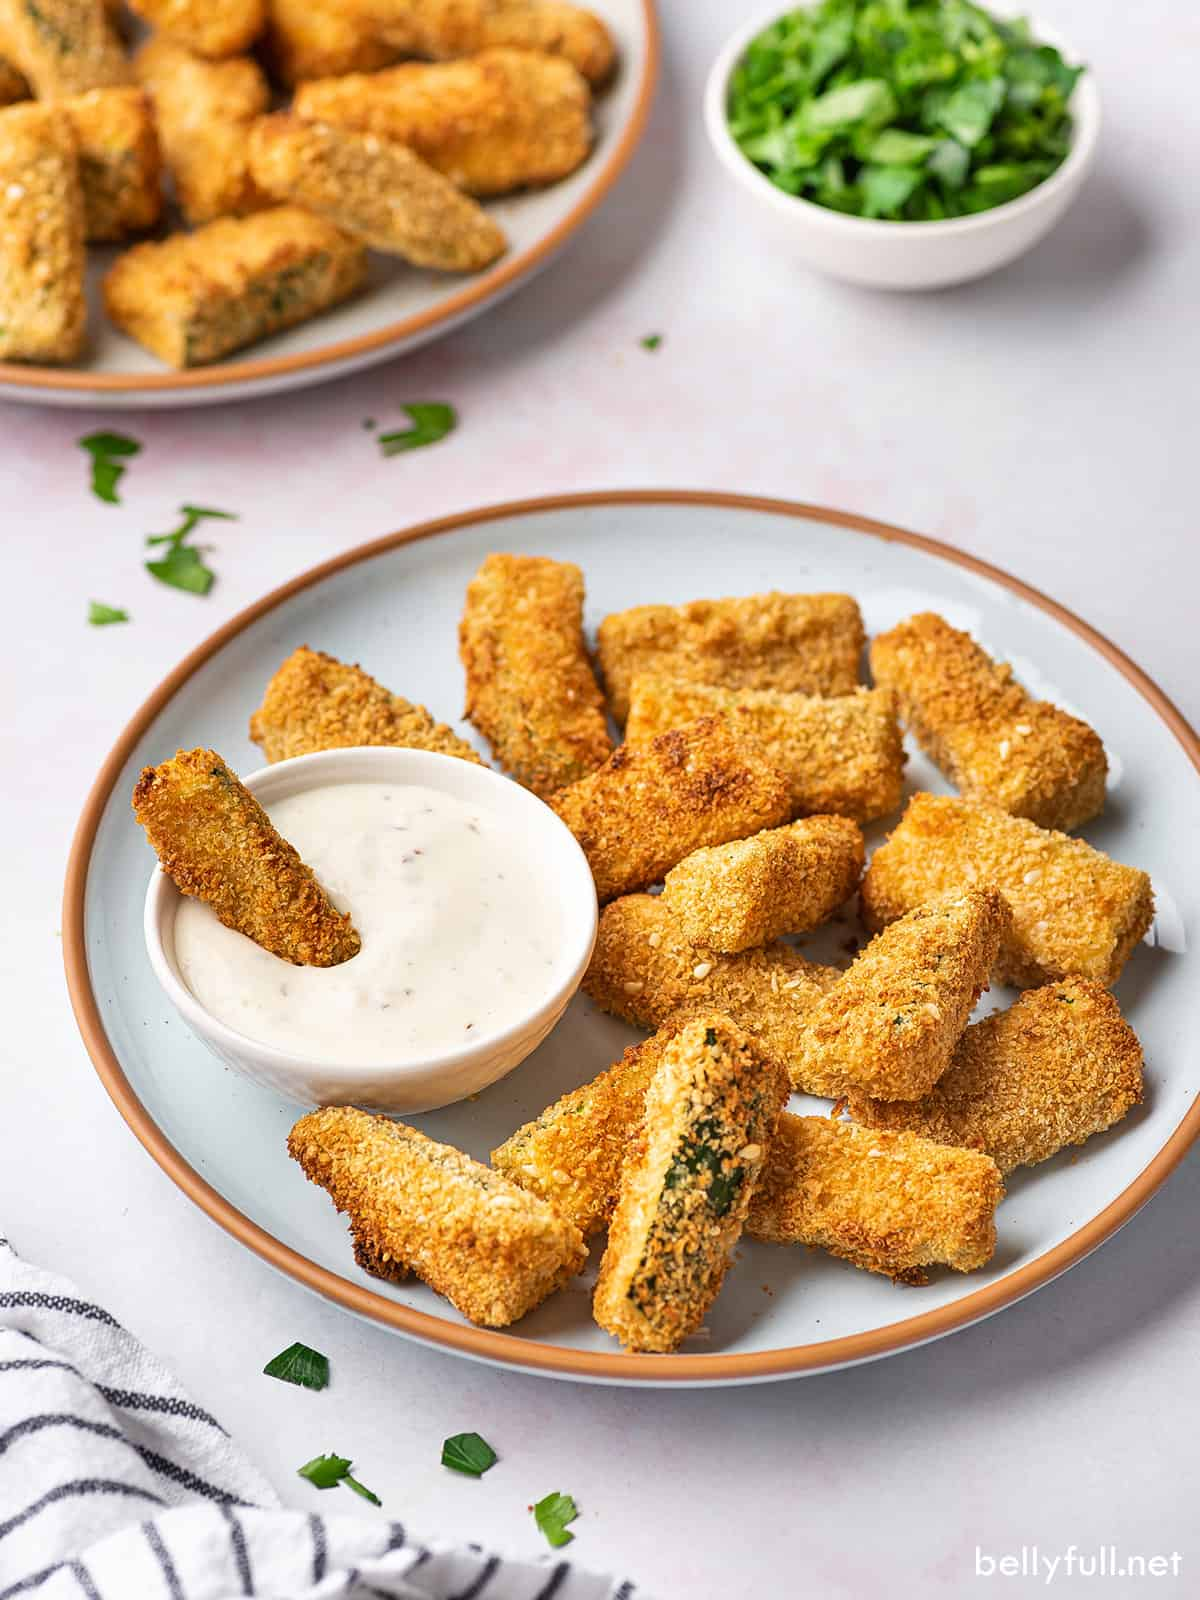 A plate of air fryer zucchini fries with one dipped into ranch dip